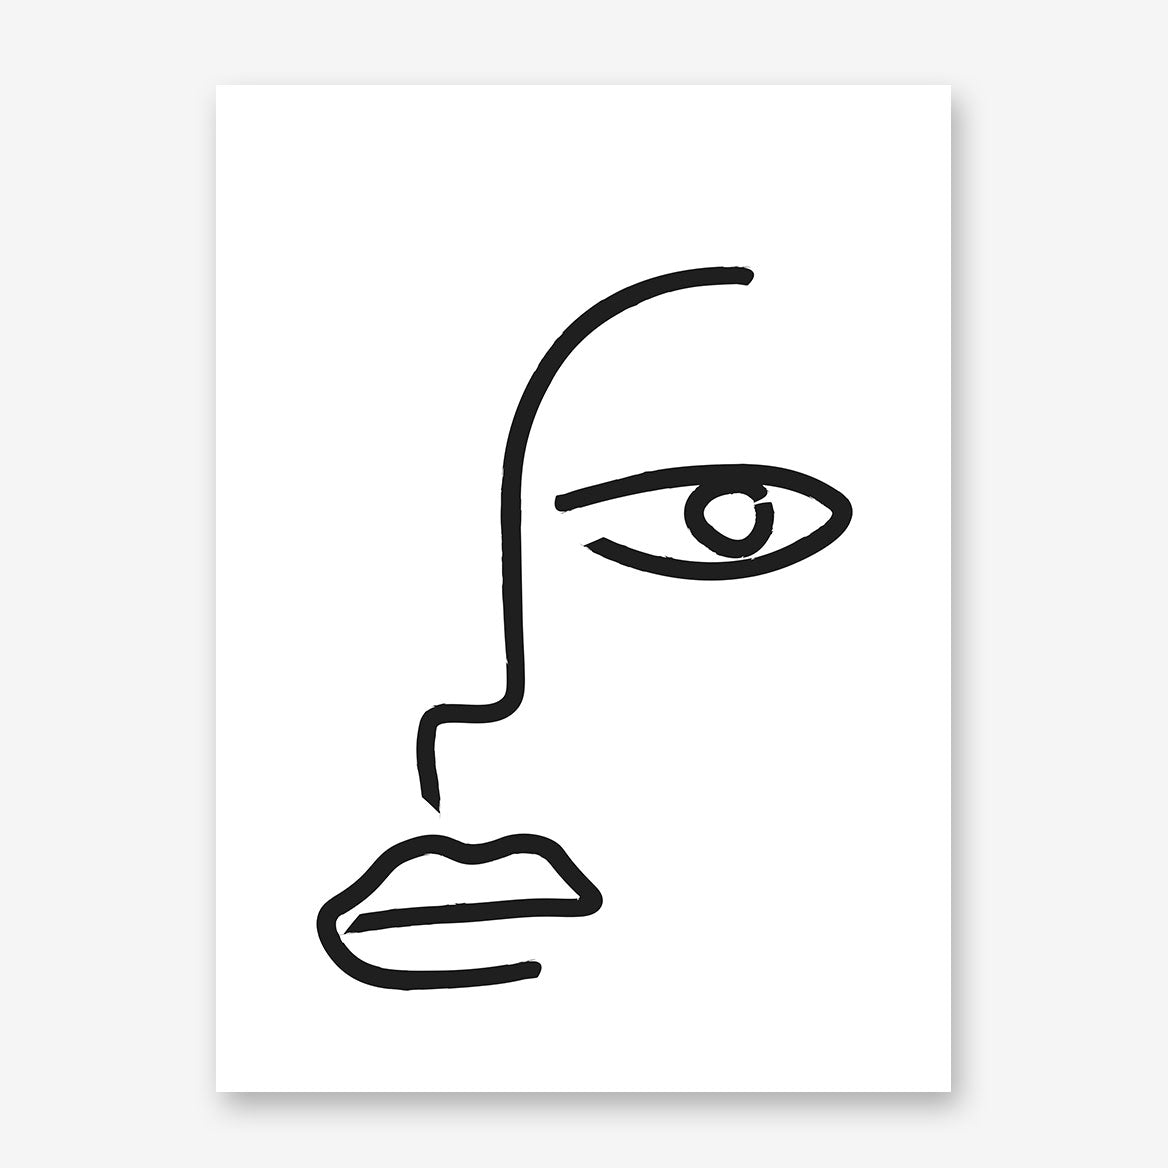 Line art poster print with abstract face drawing.